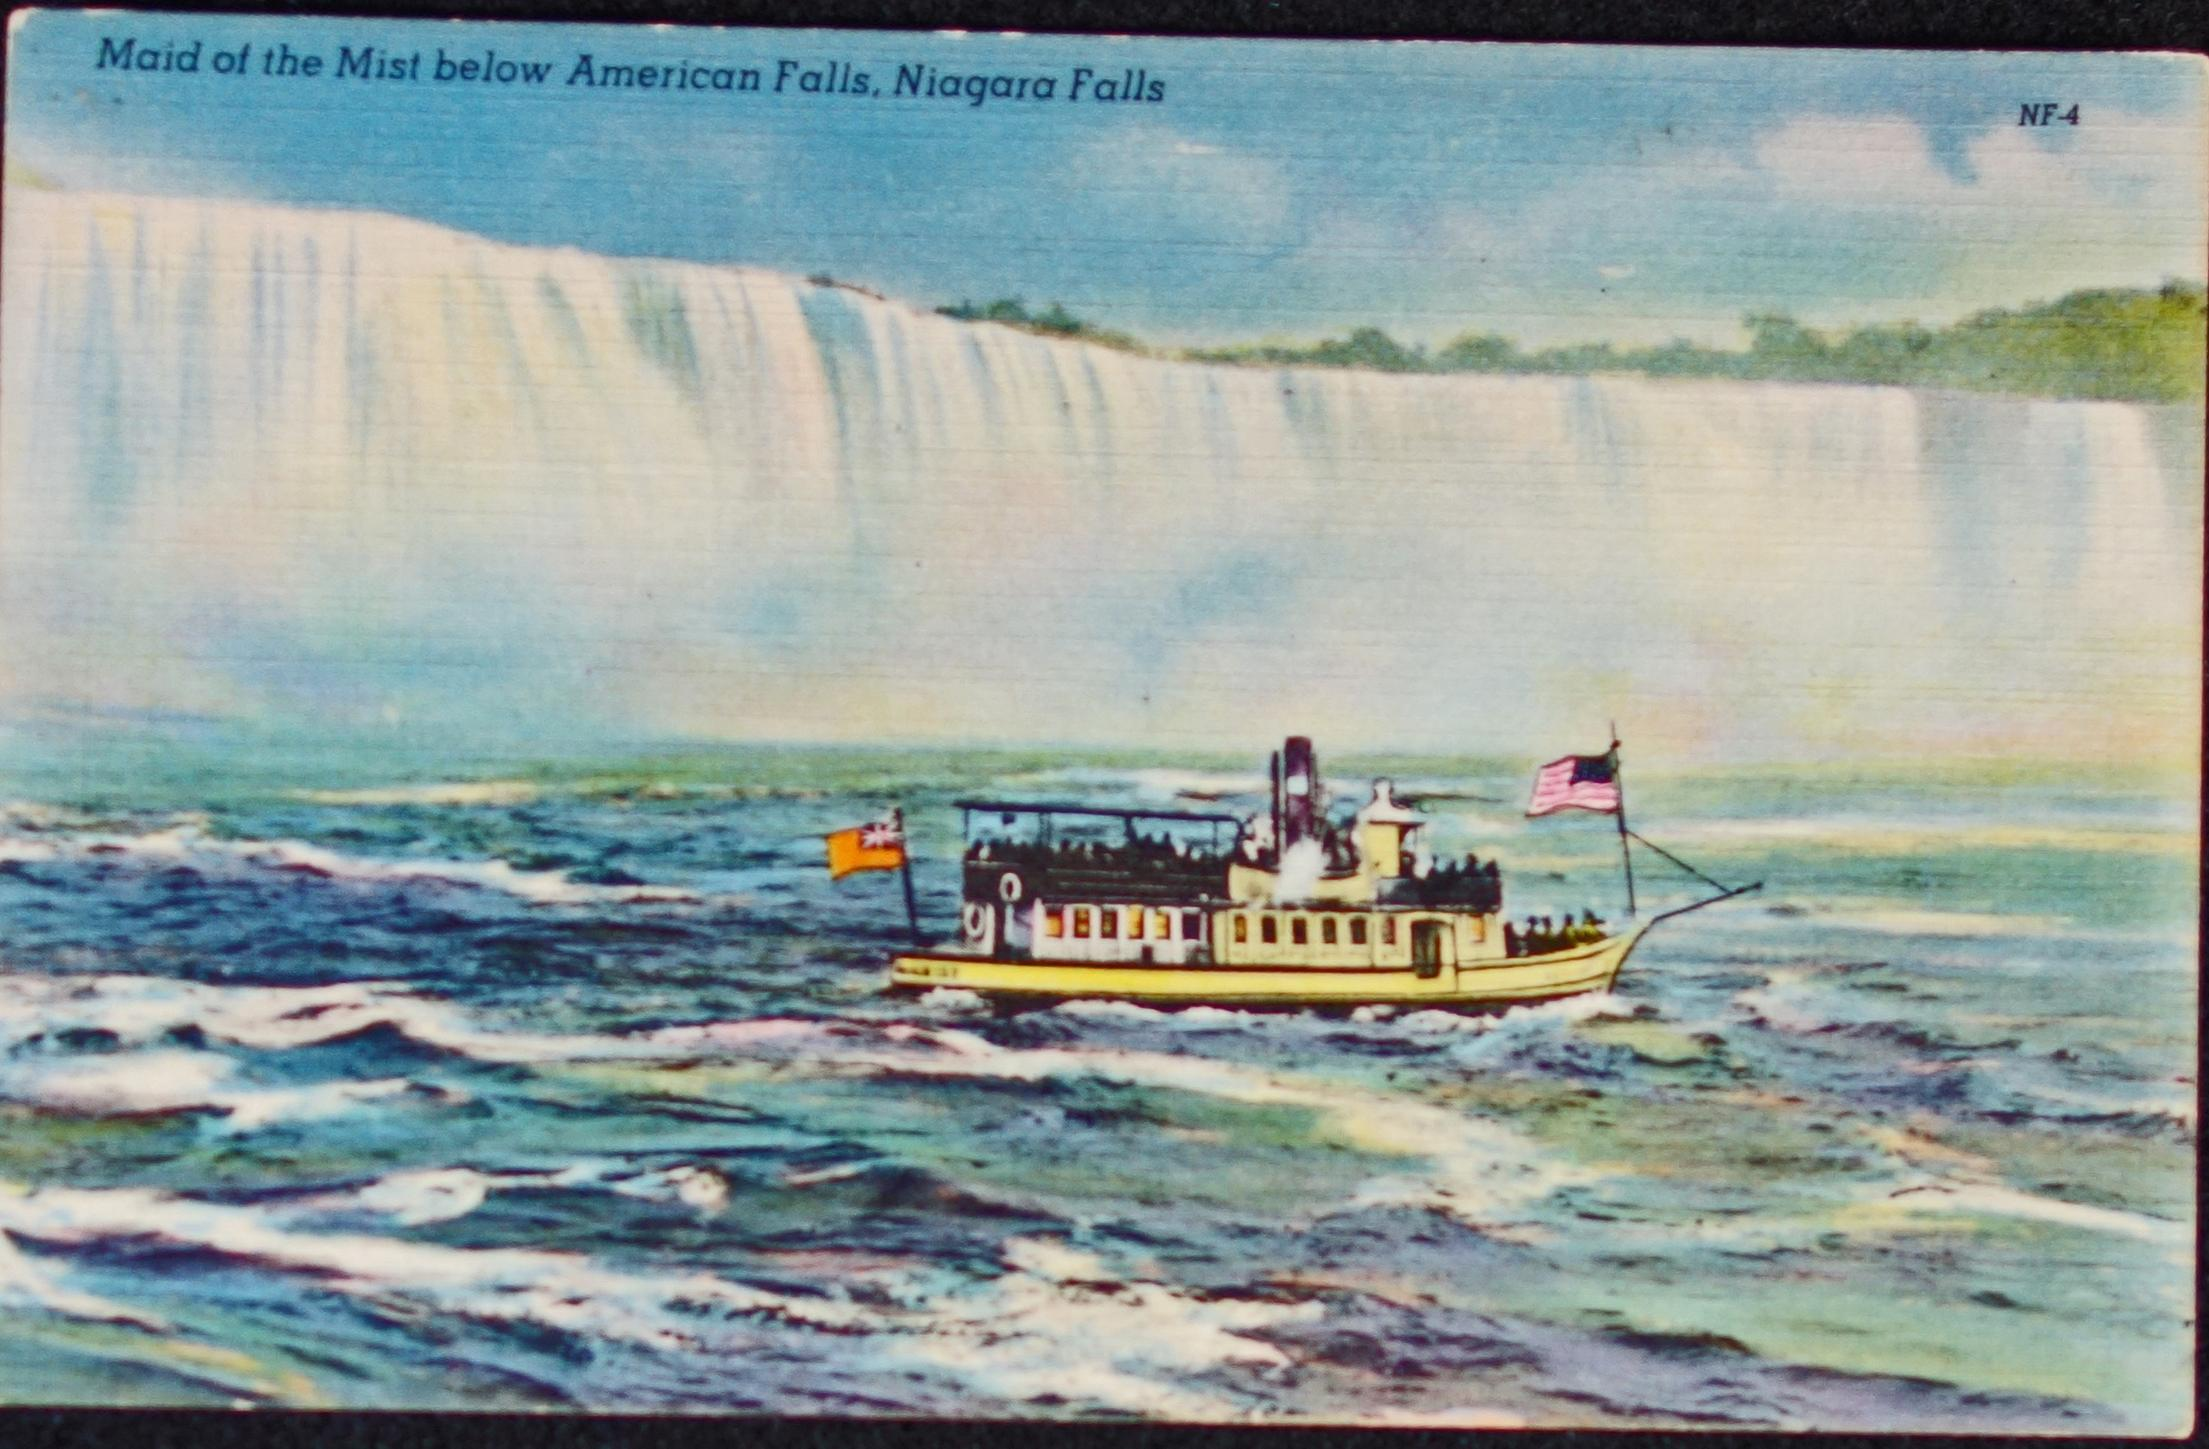 Colourised postcard of the Maid of the Mist in the Niagara River in front of the American Falls; Bridal Veil falls appears at right of the photo. A line of trees are shown as wel above the water on the right half of the photograph. On the bow is the American flag and at aft is a Red Ensign. Chimney for steam power is at the middle of the boat.